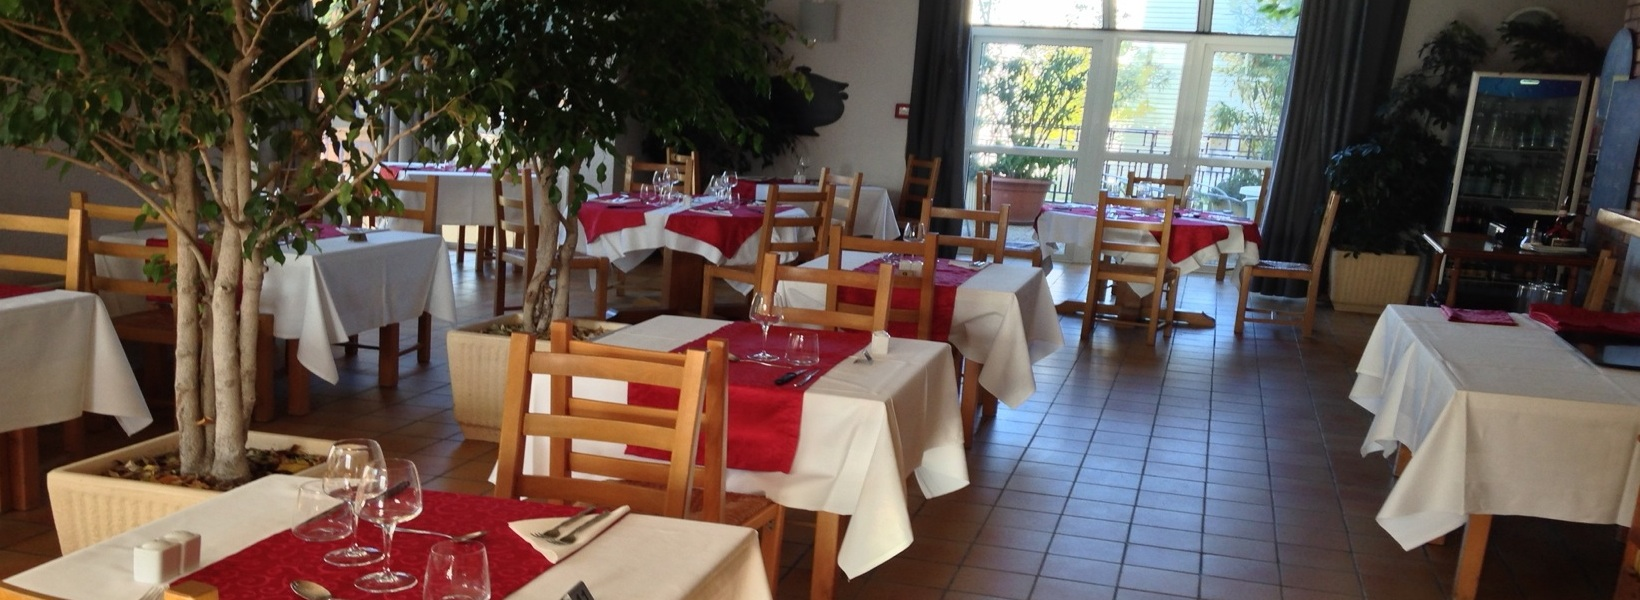 Restaurant traditionnel Lons